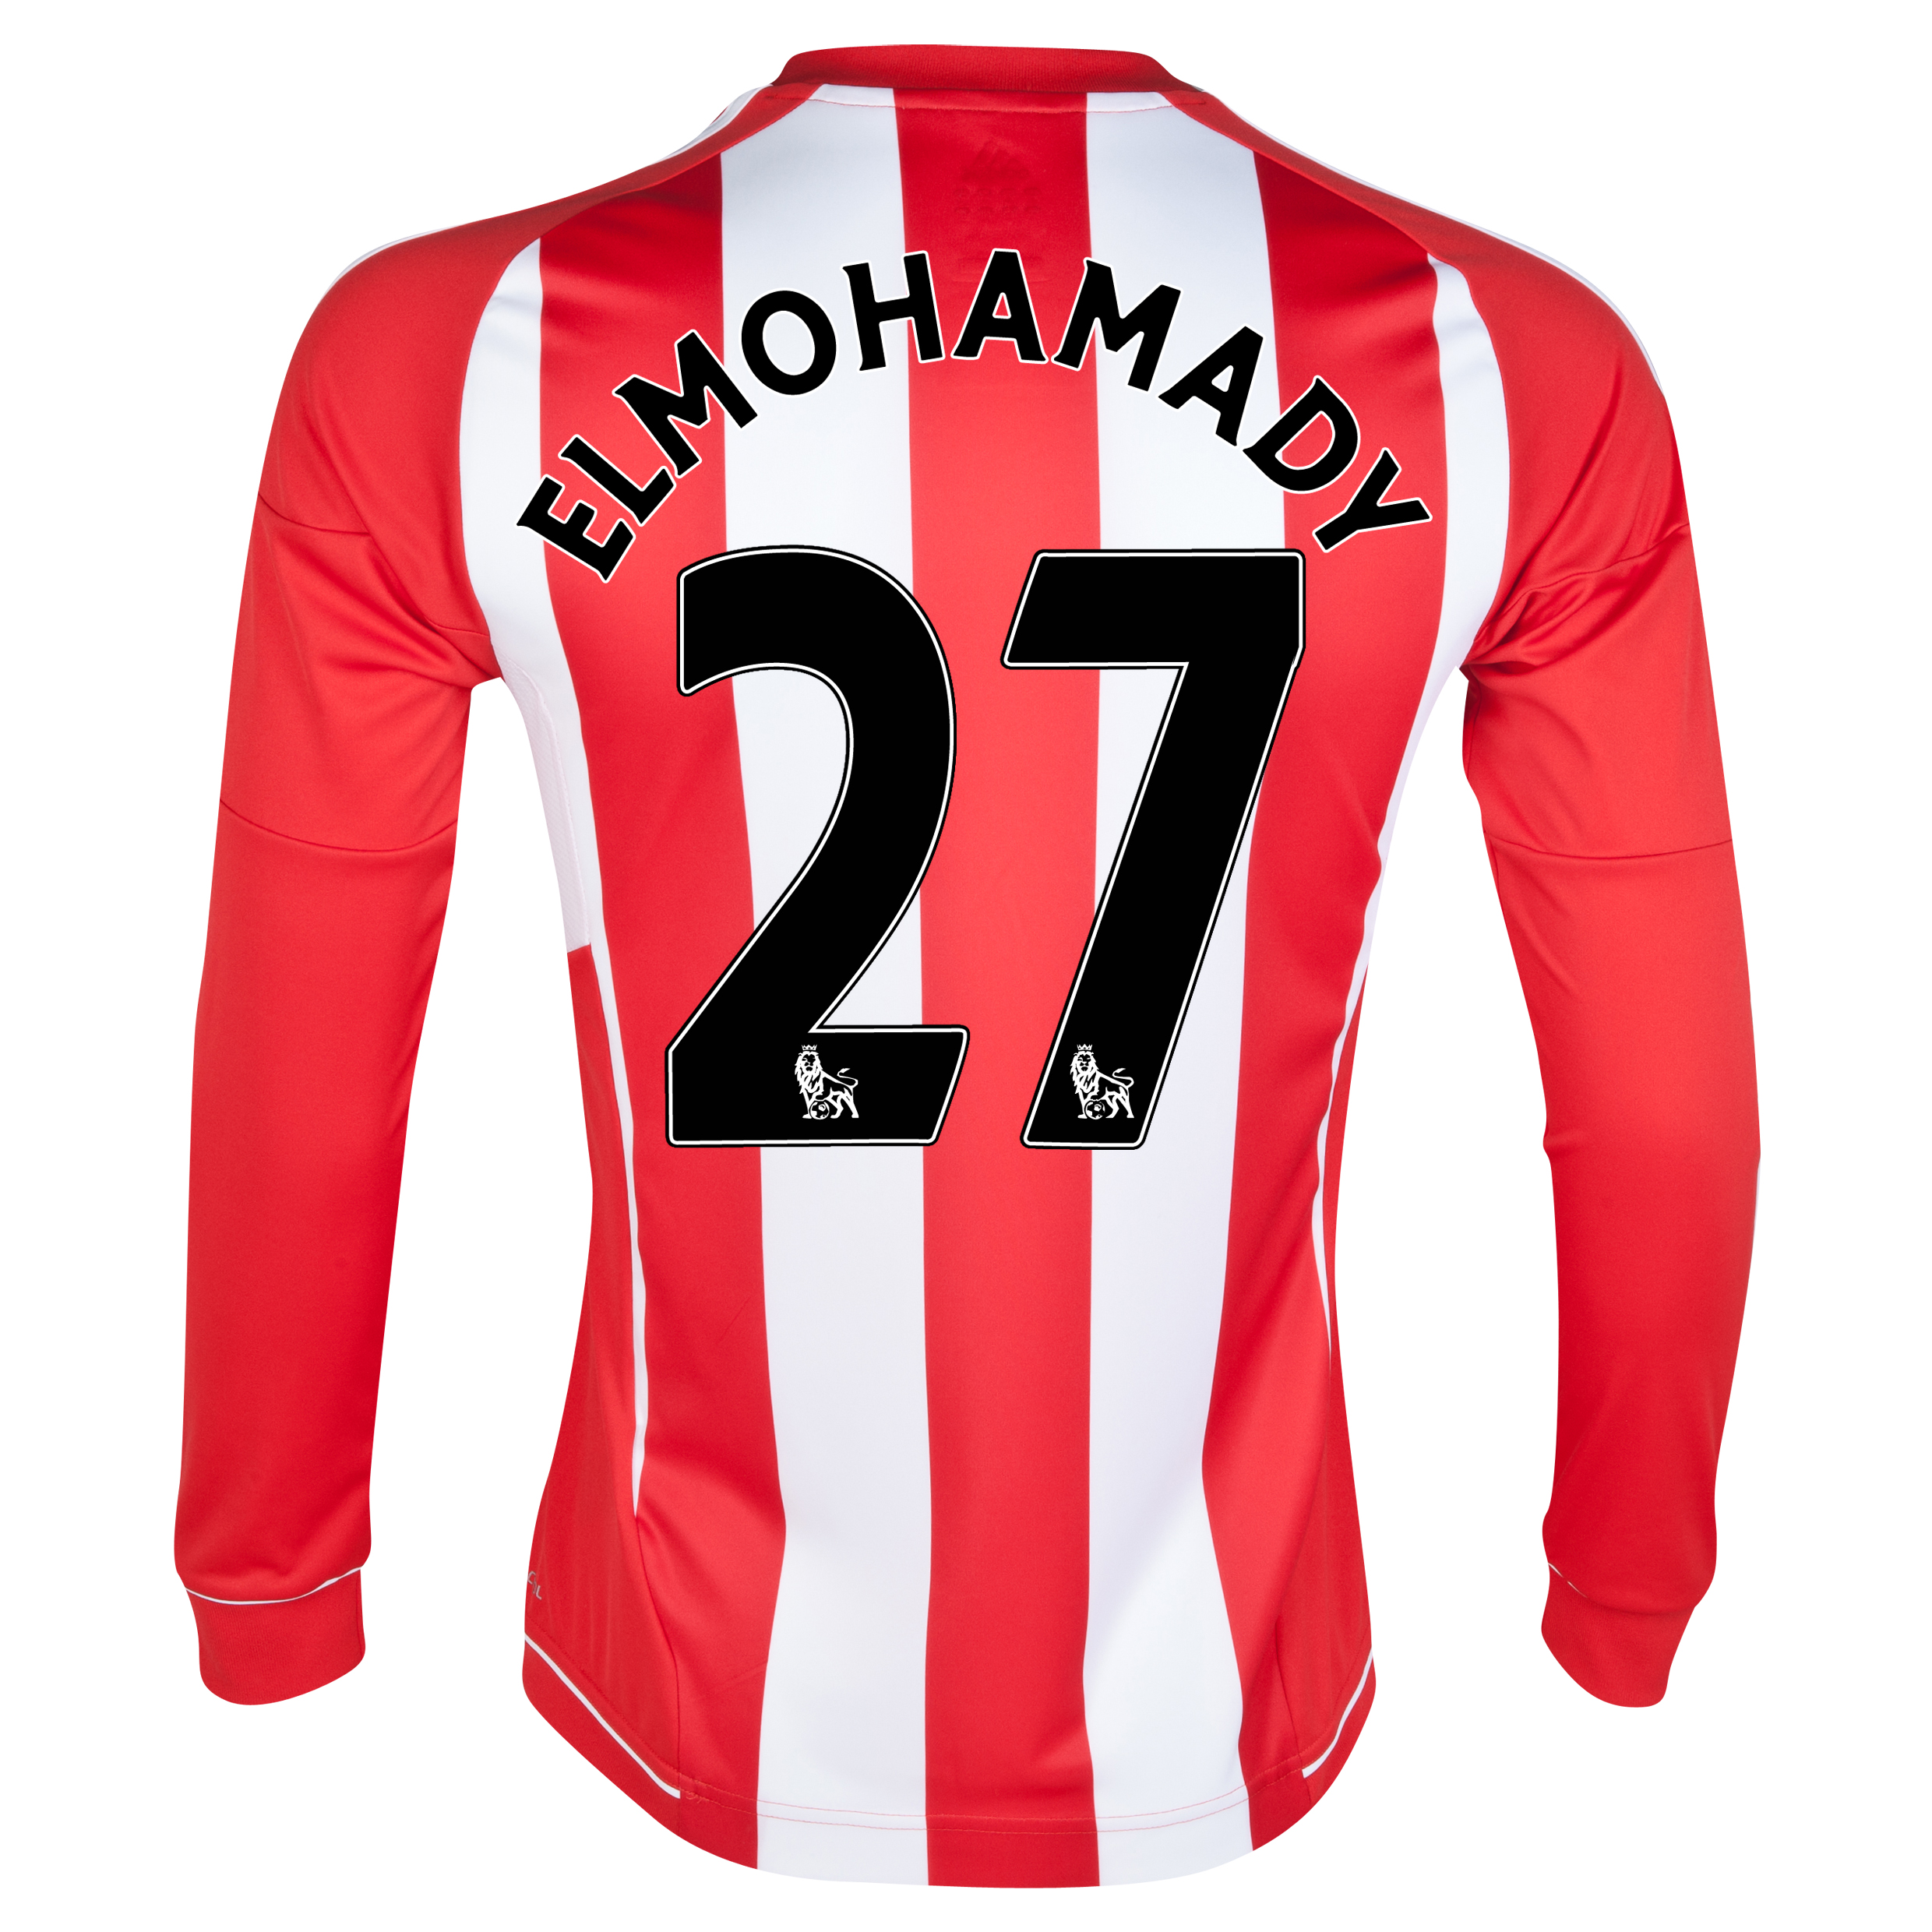 Sunderland Home Shirt 2012/13 - Long Sleeved with Elmohamady 27 printing